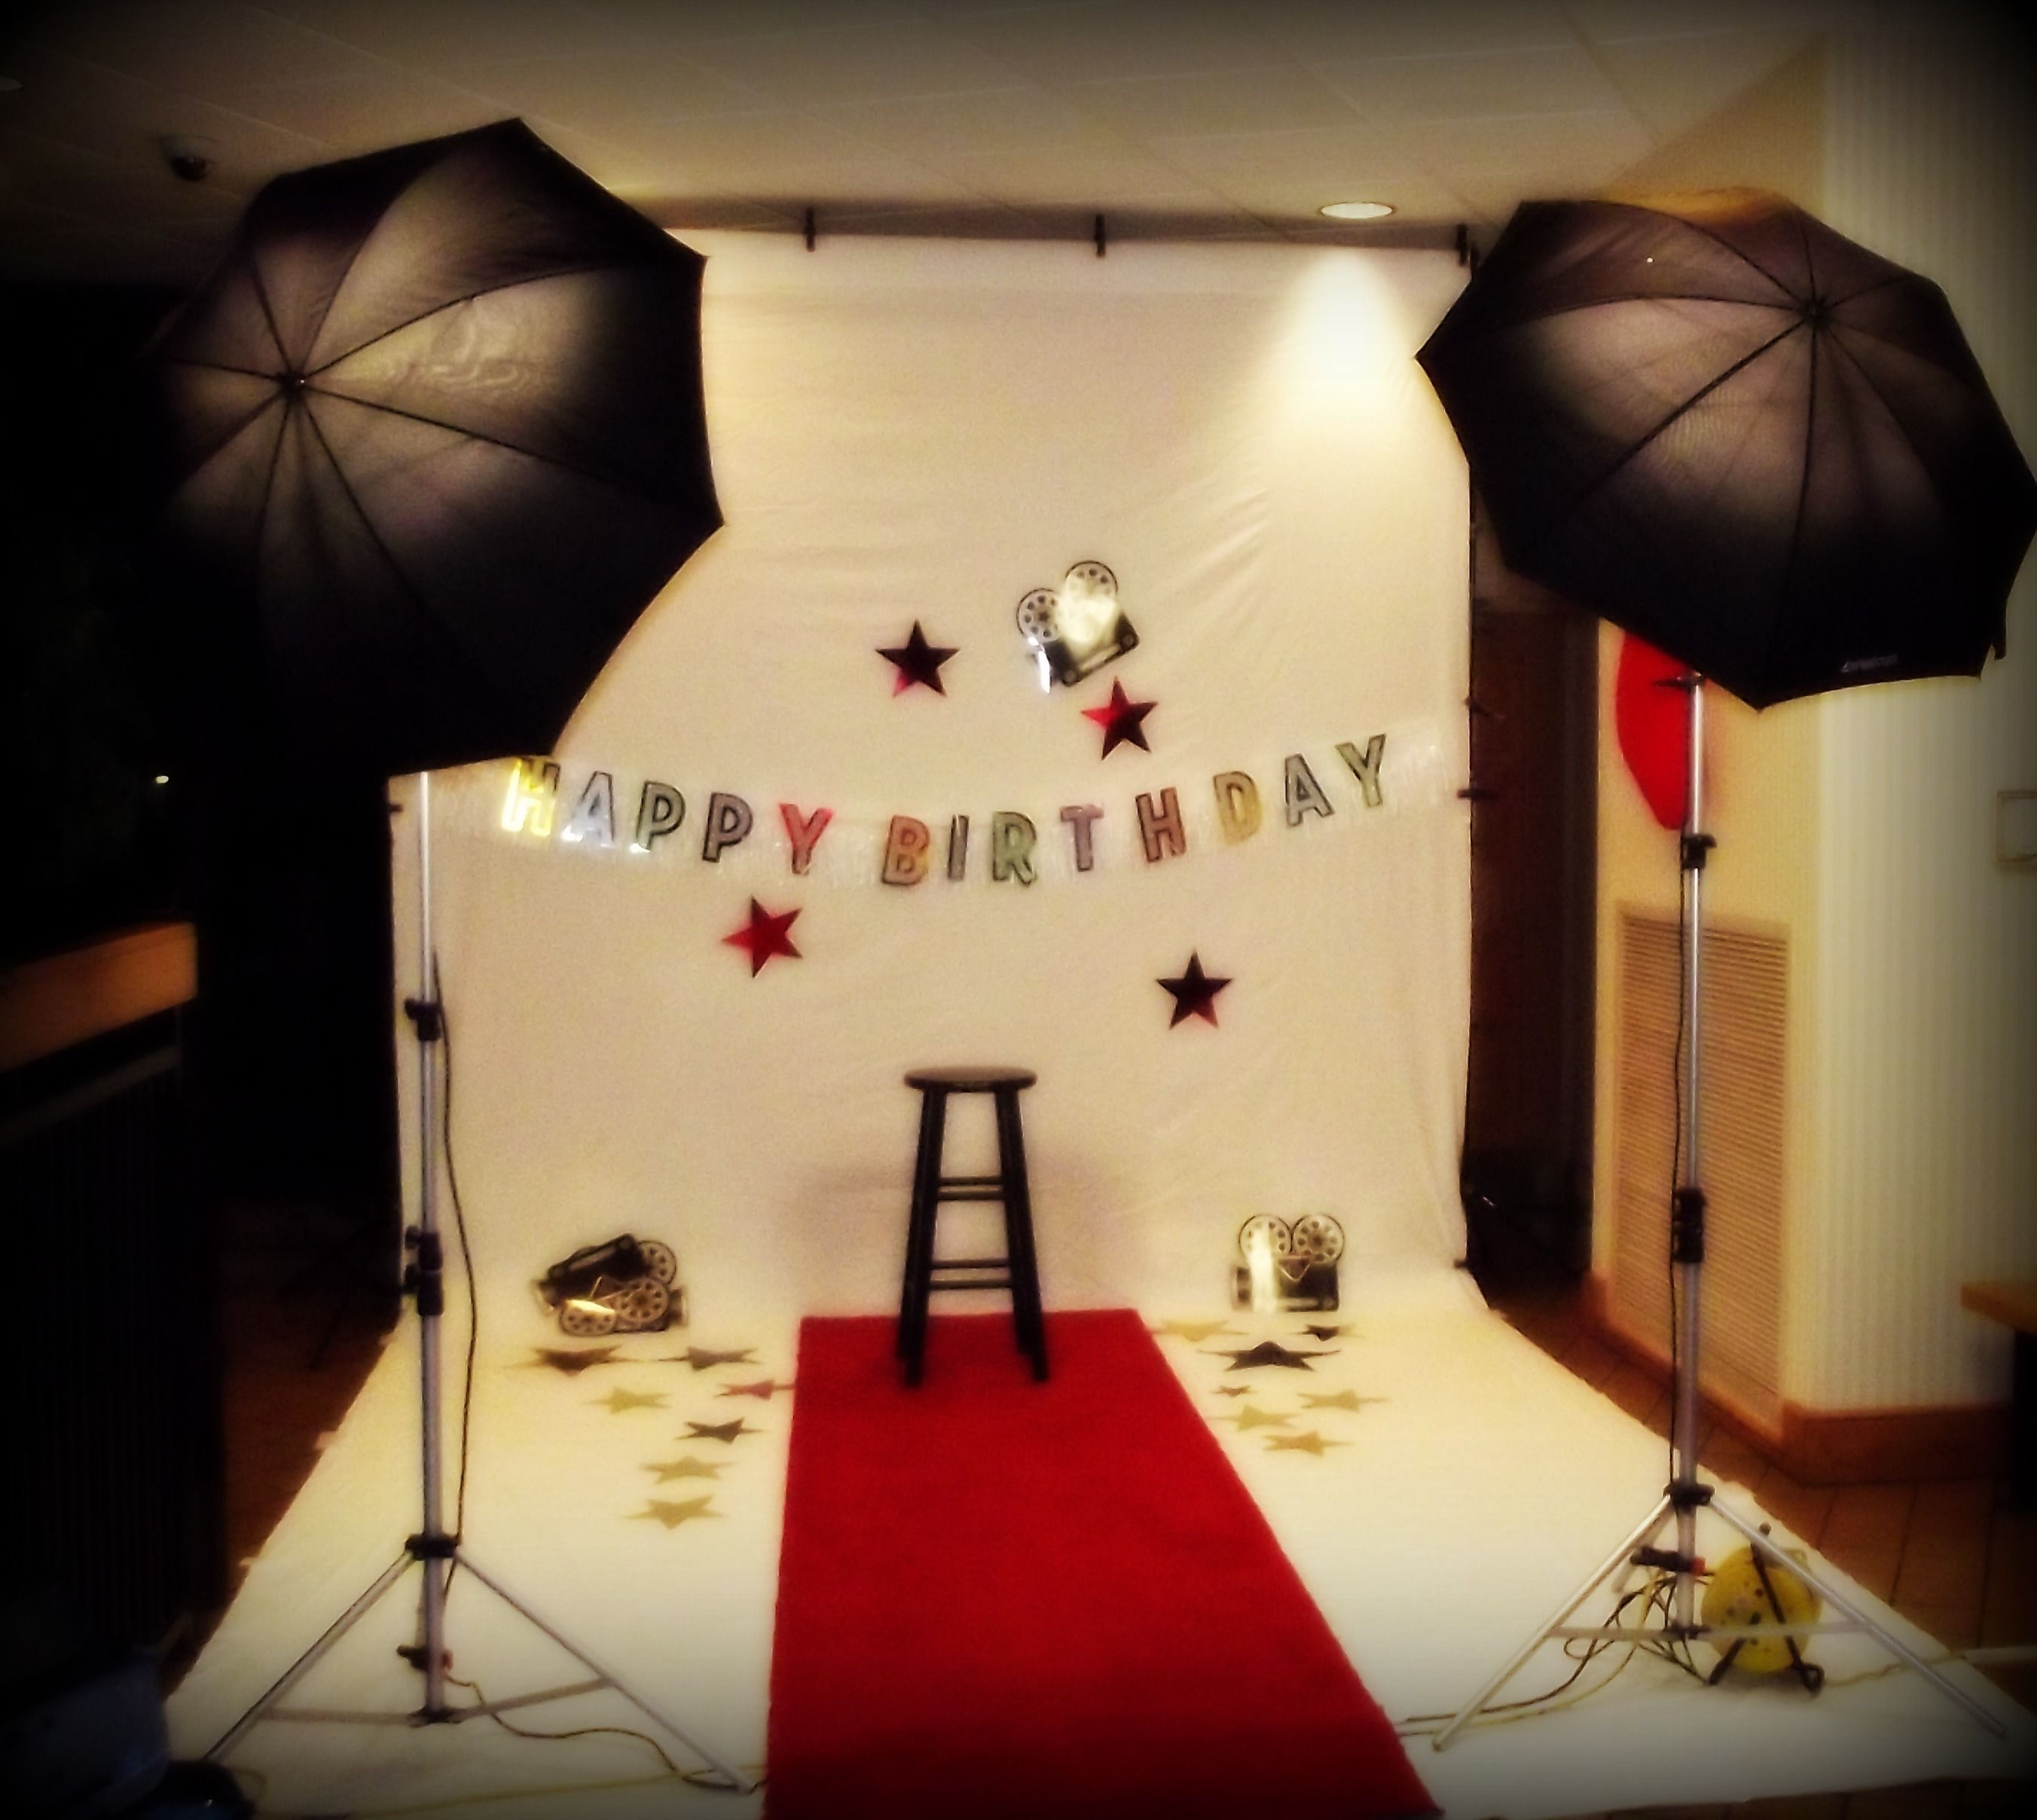 Hollywood theme birthday photo shoot setup fabulous party ideas pinteres - Decor shooting photo ...